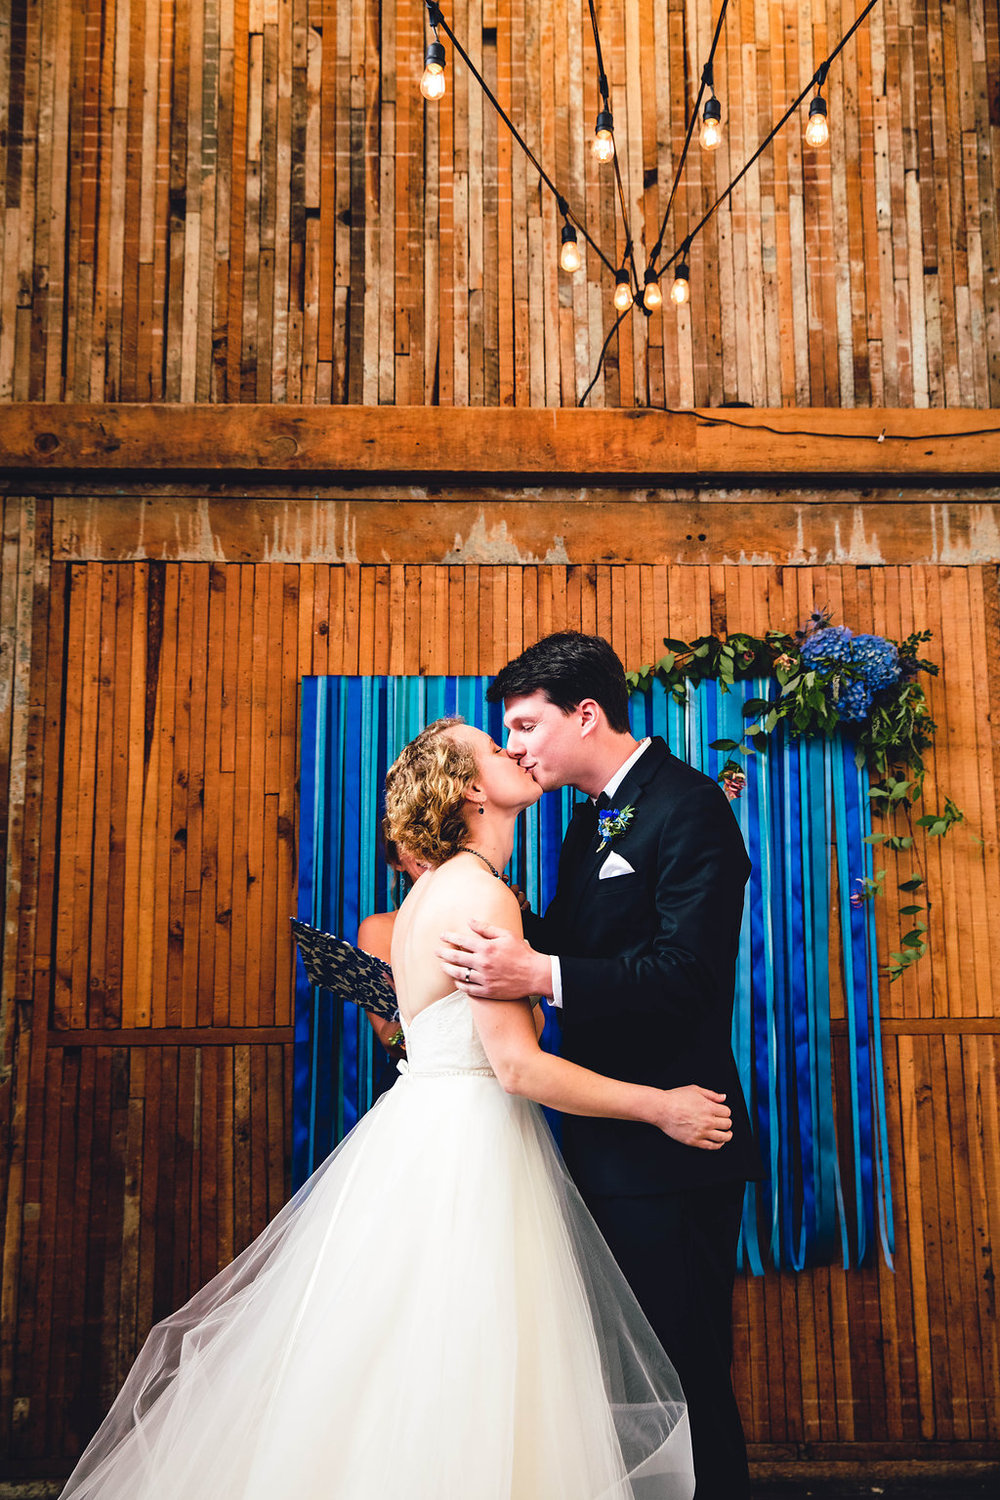 Nissa+Jesse_Wedding_Seattle_SoleRepairShop_6252015_551.jpg